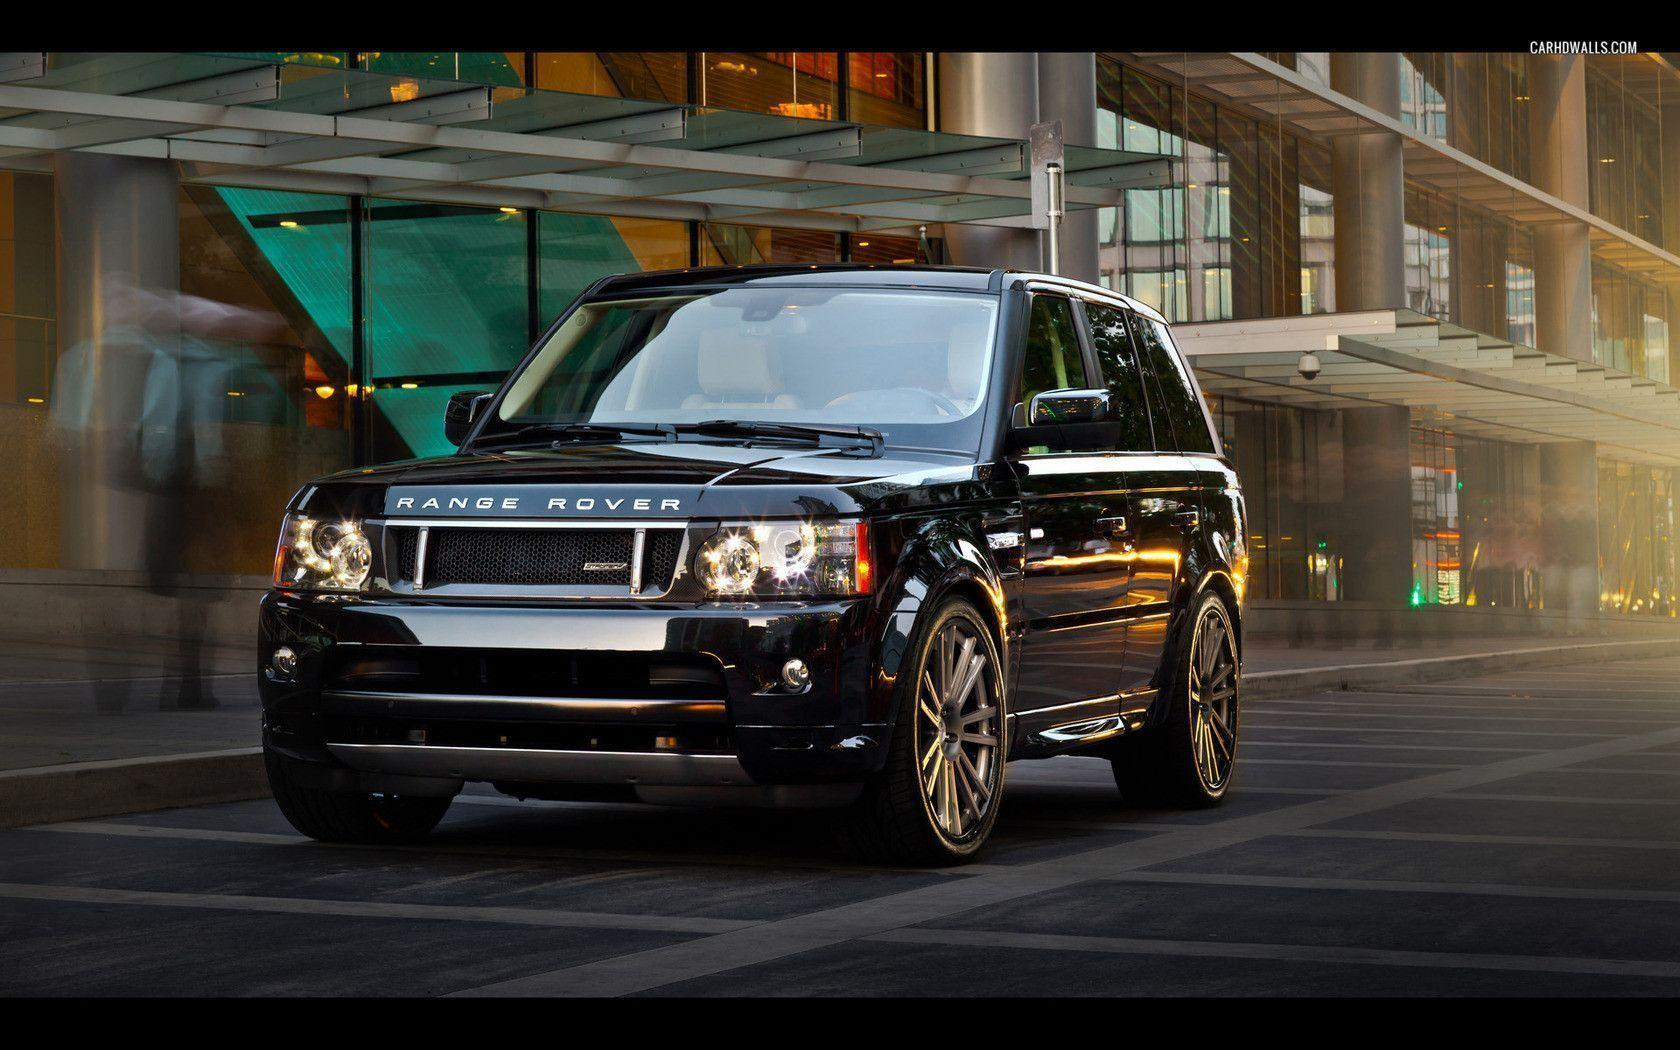 Sport Wallpaper Land Rovers: Range Rover Sport Wallpapers